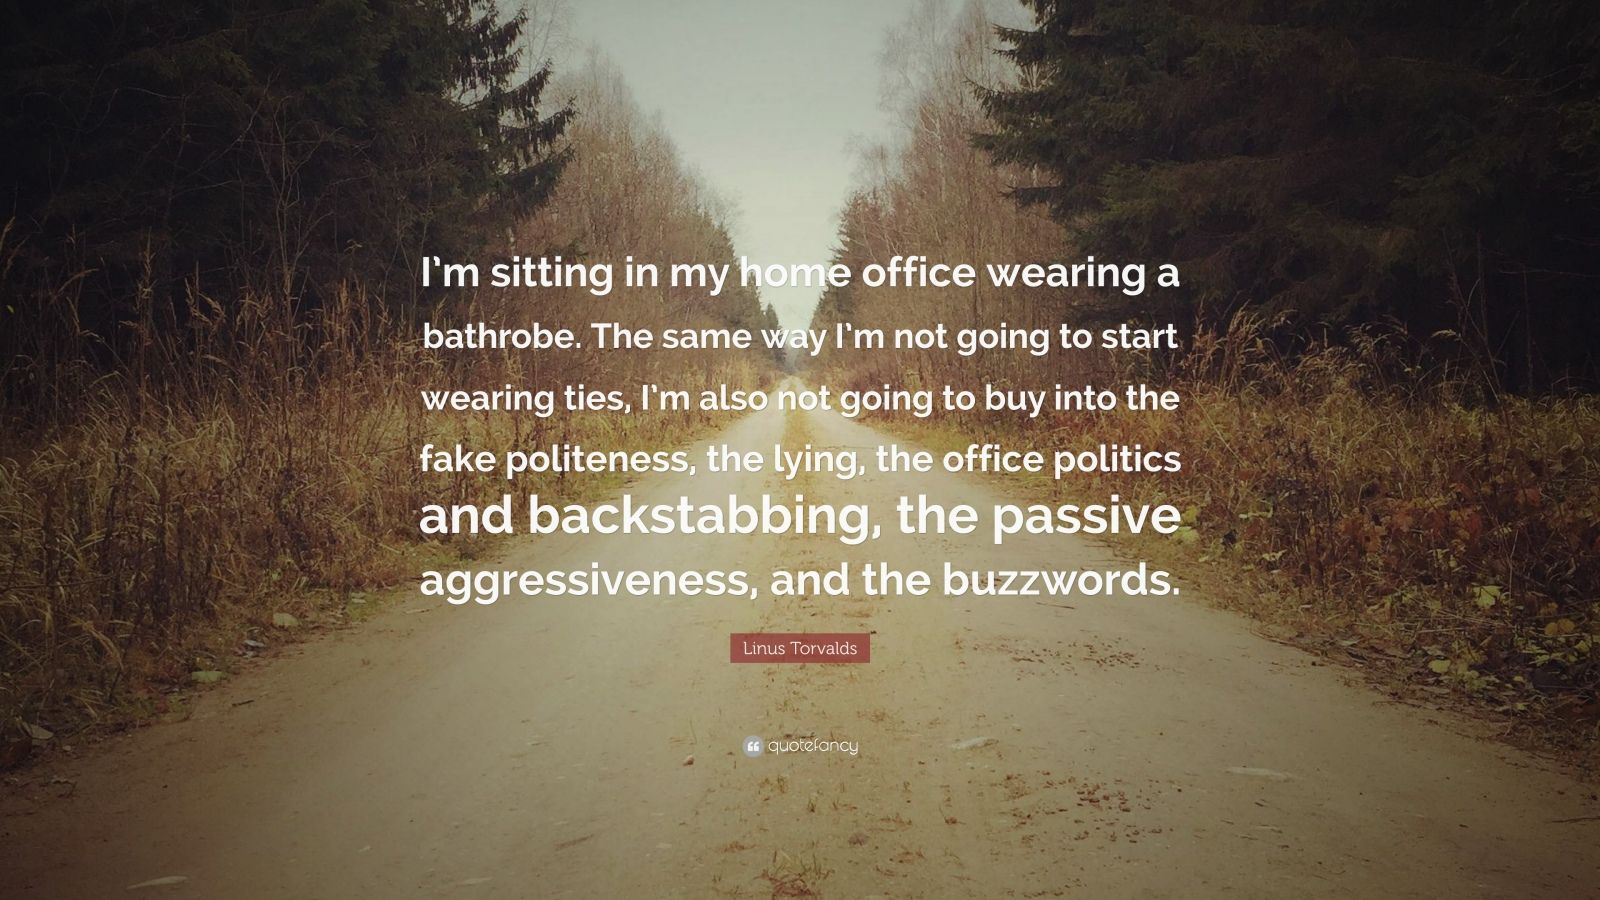 """Linus Torvalds Quote: """"I'm sitting in my home office wearing a bathrobe. The same way I'm not going to start wearing ties, I'm also not going to buy into the fake politeness, the lying, the office politics and backstabbing, the passive aggressiveness, and the buzzwords."""""""